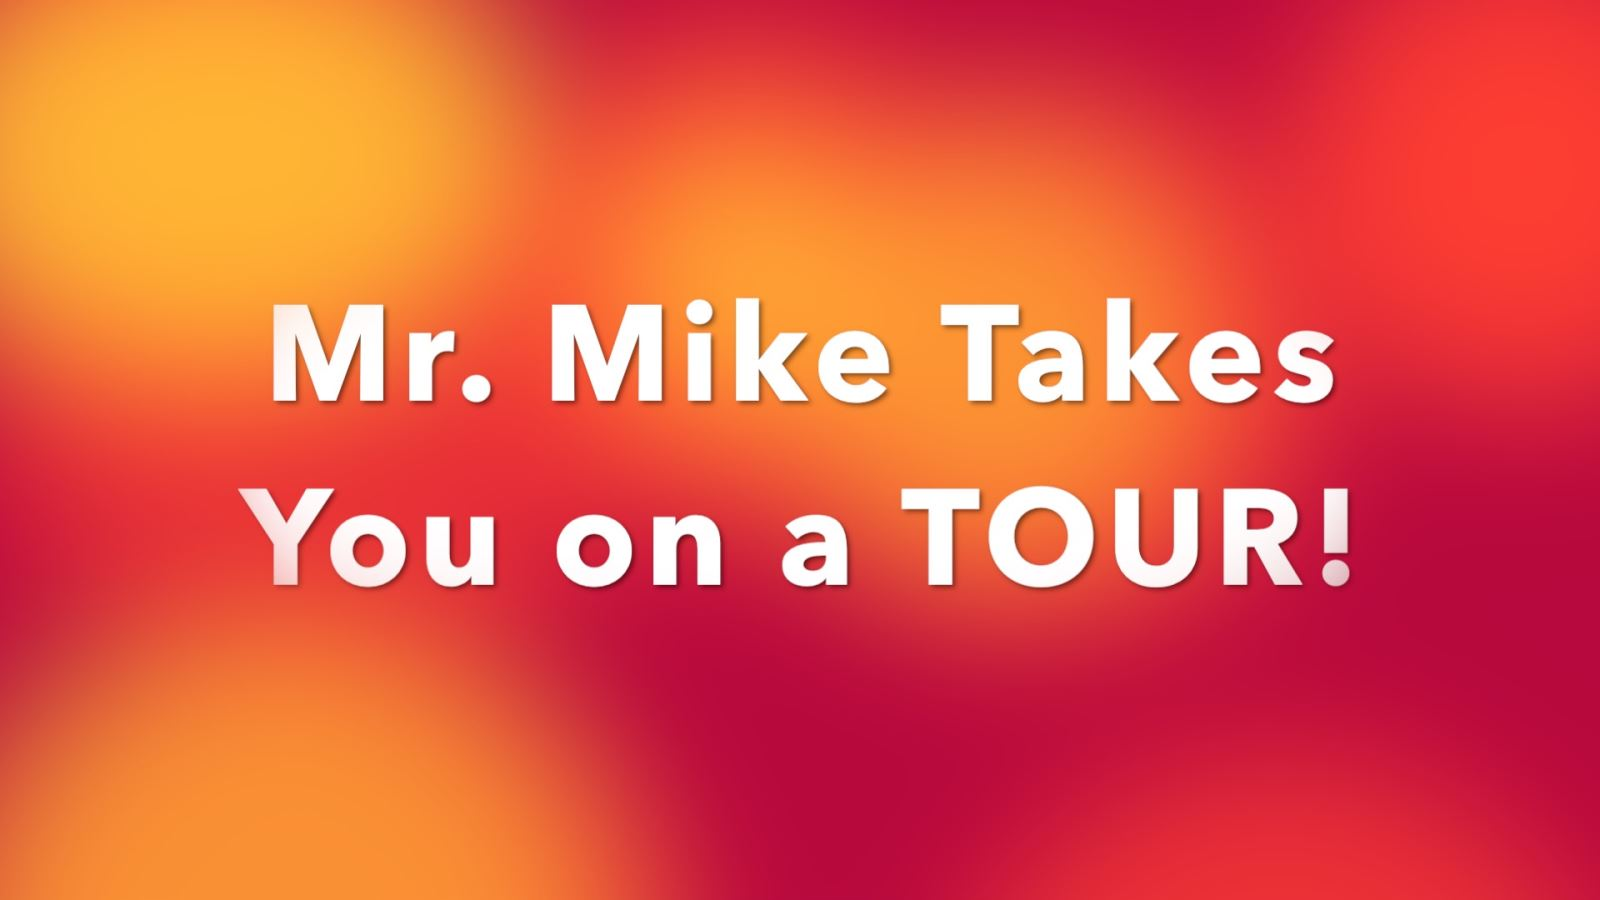 The Text Mr Mike Takes You on a TOUR linking to school tour youtube video